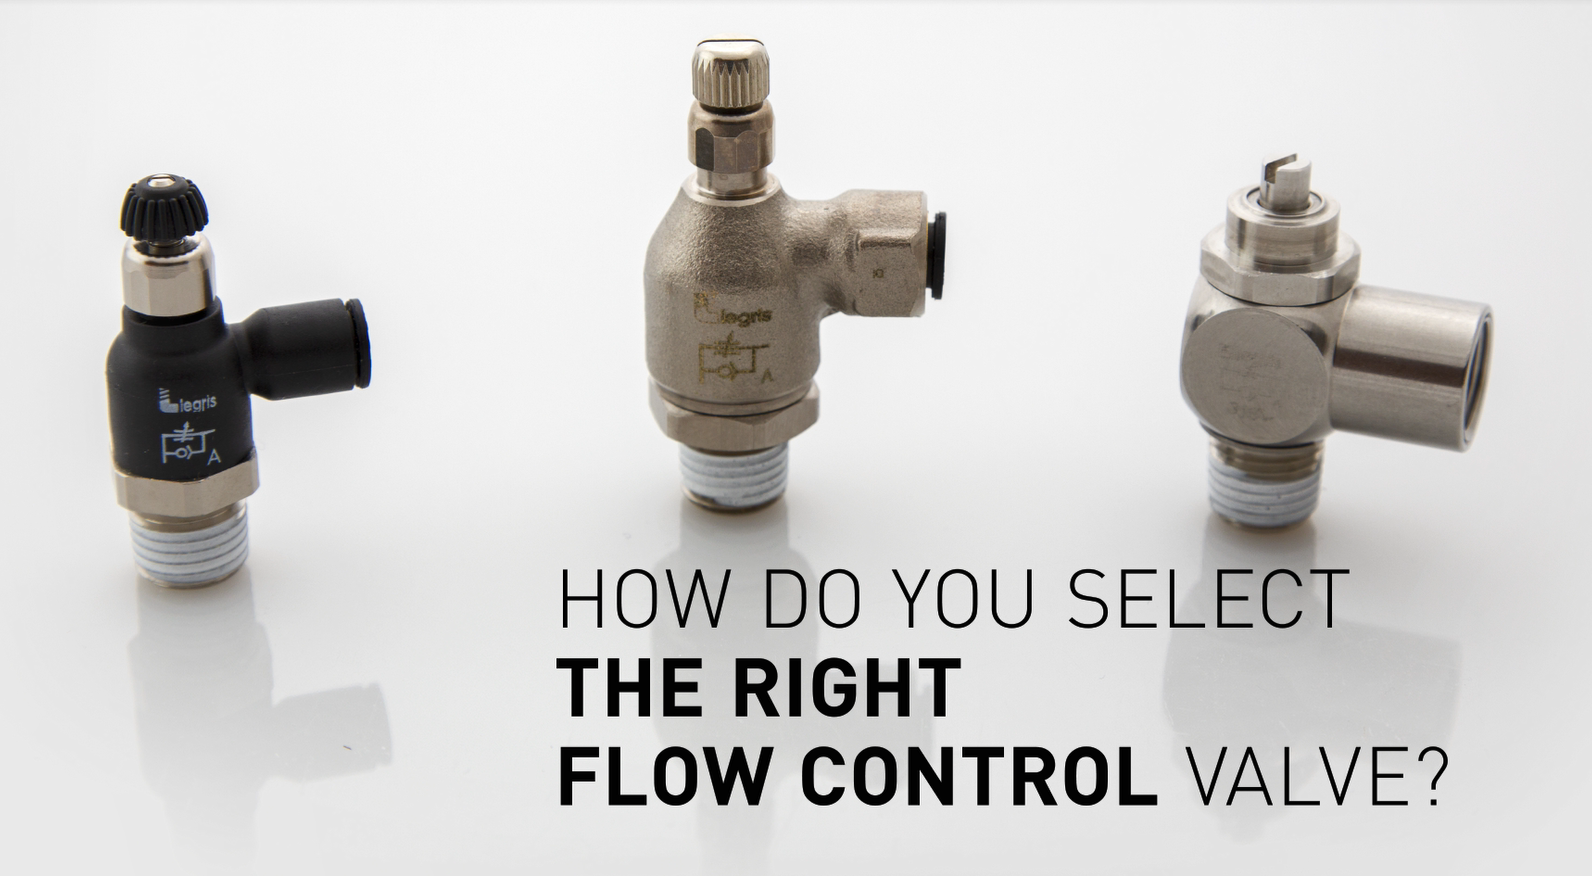 Selecting the right flow control